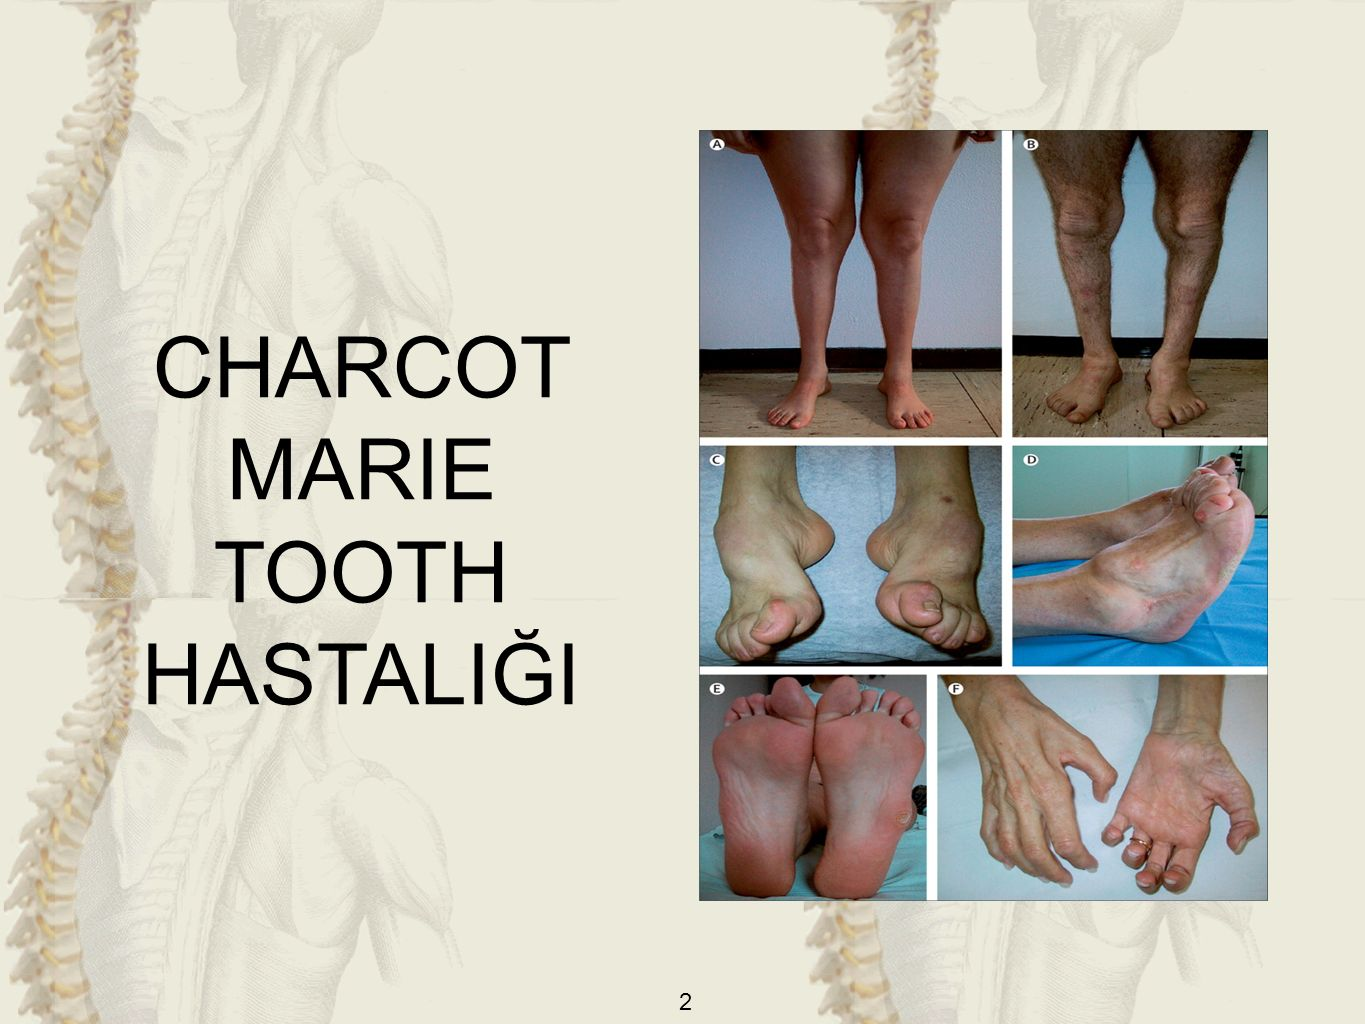 2 CHARCOT MARIE TOOTH HASTALIĞI